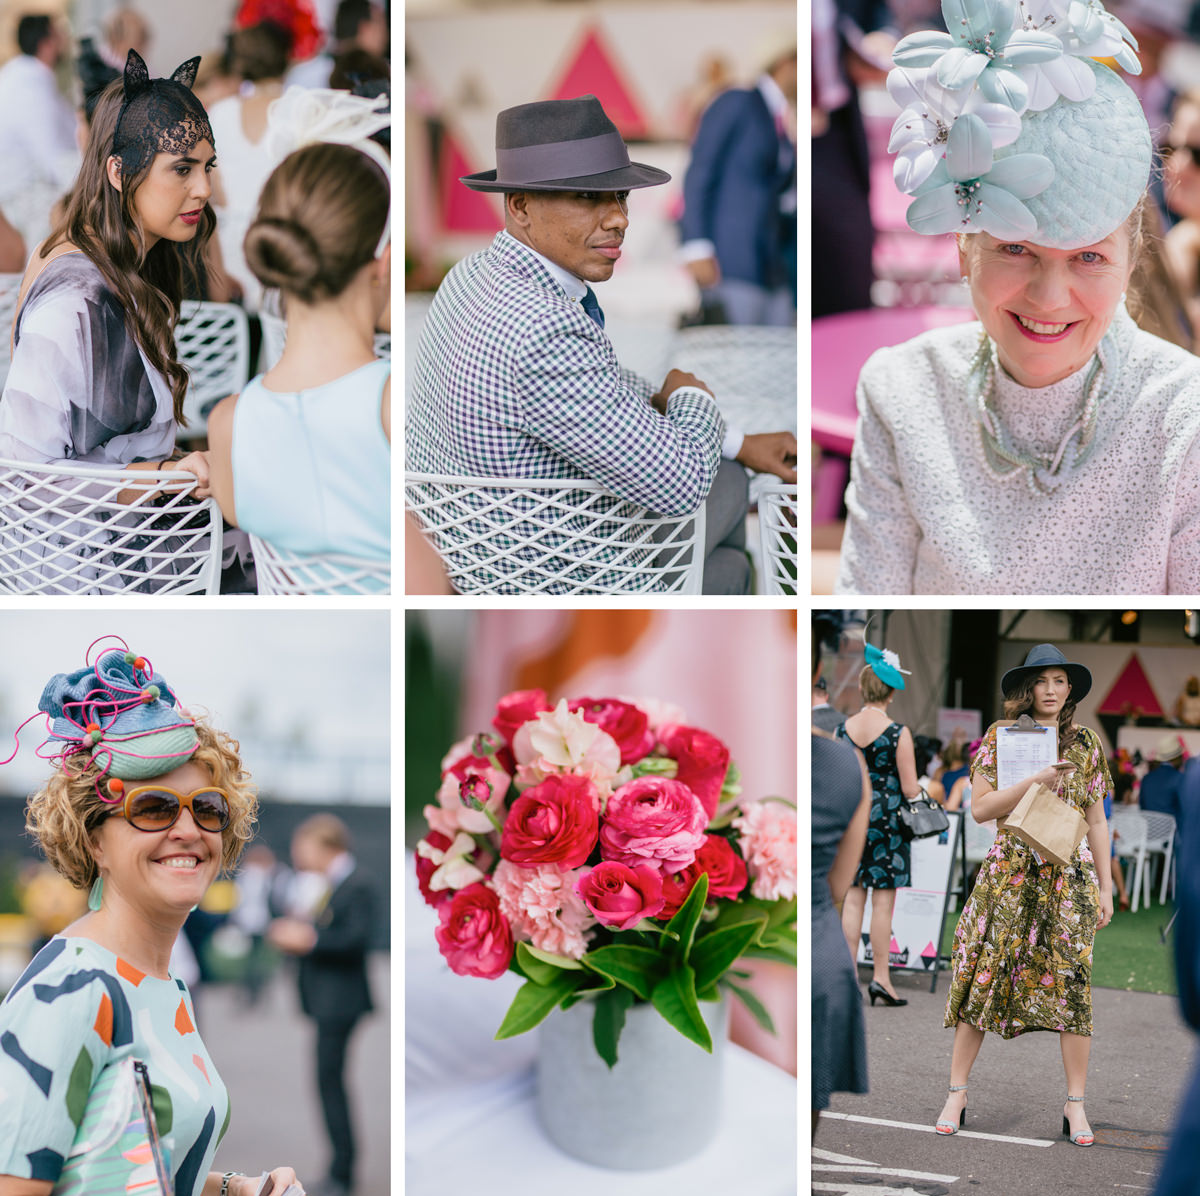 images and photographs of spring racing fashion